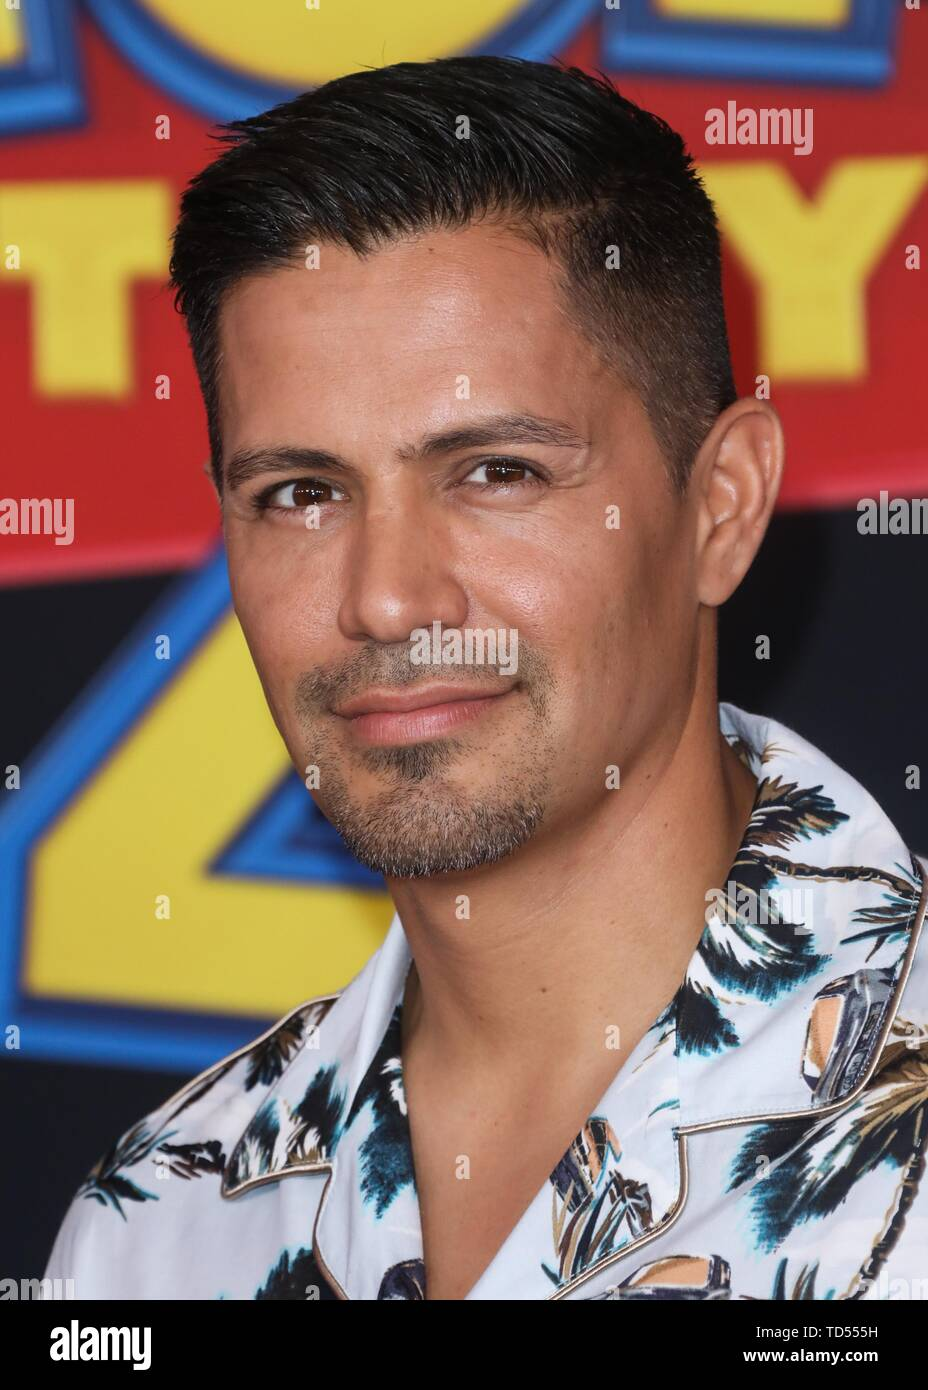 Hollywood, USA. 11th June, 2019. HOLLYWOOD, LOS ANGELES, CALIFORNIA, USA - JUNE 11: Actor Jay Hernandez arrives at the Los Angeles Premiere Of Disney And Pixar's 'Toy Story 4' held at the El Capitan Theatre on June 11, 2019 in Hollywood, Los Angeles, California, USA. (Photo by David Acosta/Image Press Agency) Credit: Image Press Agency/Alamy Live News - Stock Image